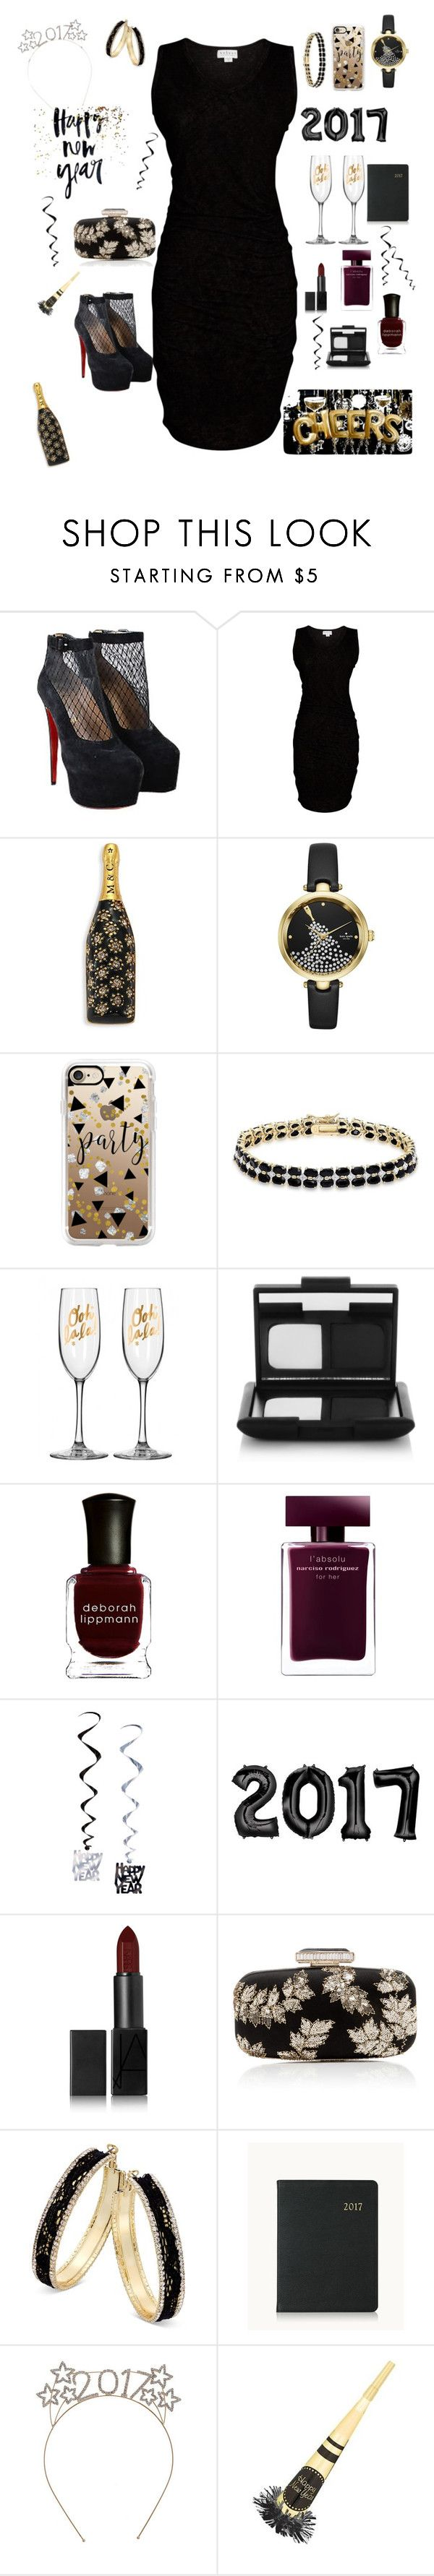 """""""Black and Gold"""" by darkreader ❤ liked on Polyvore featuring Christian Louboutin, Velvet by Graham & Spencer, Marc Jacobs, Kate Spade, Casetify, Dolce Giavonna, NARS Cosmetics, Deborah Lippmann, Narciso Rodriguez and Oscar de la Renta"""